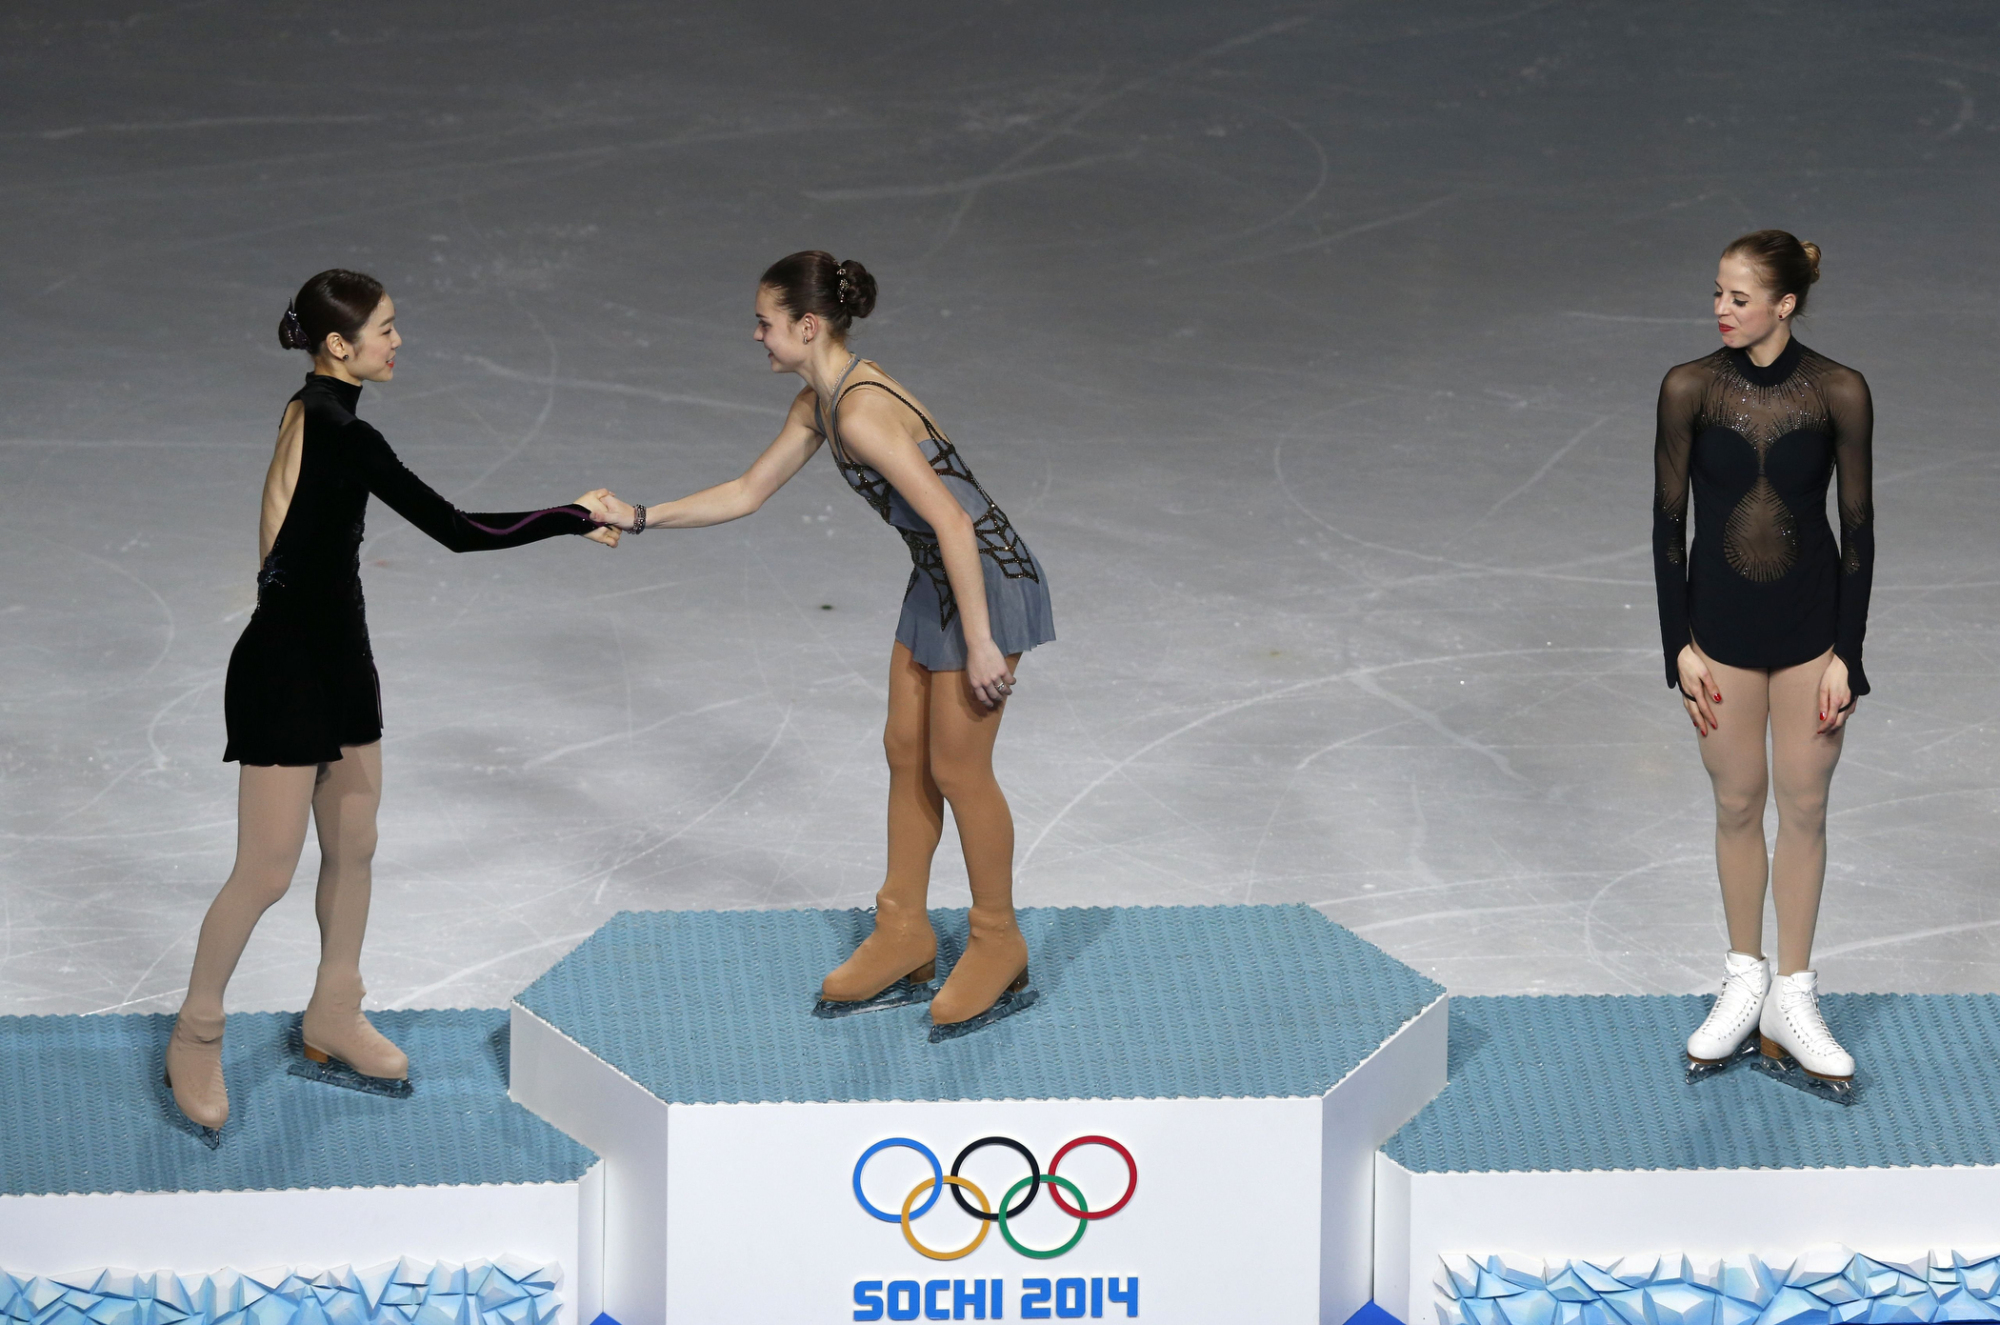 (From L) South Korea's silver medalist Kim Yu-Na, Russia's gold medalist Adelina Sotnikova and Italy's bronze medalist Carolina Kostner celebrate on the podium during the Women's Figure Skating Flower Ceremony.